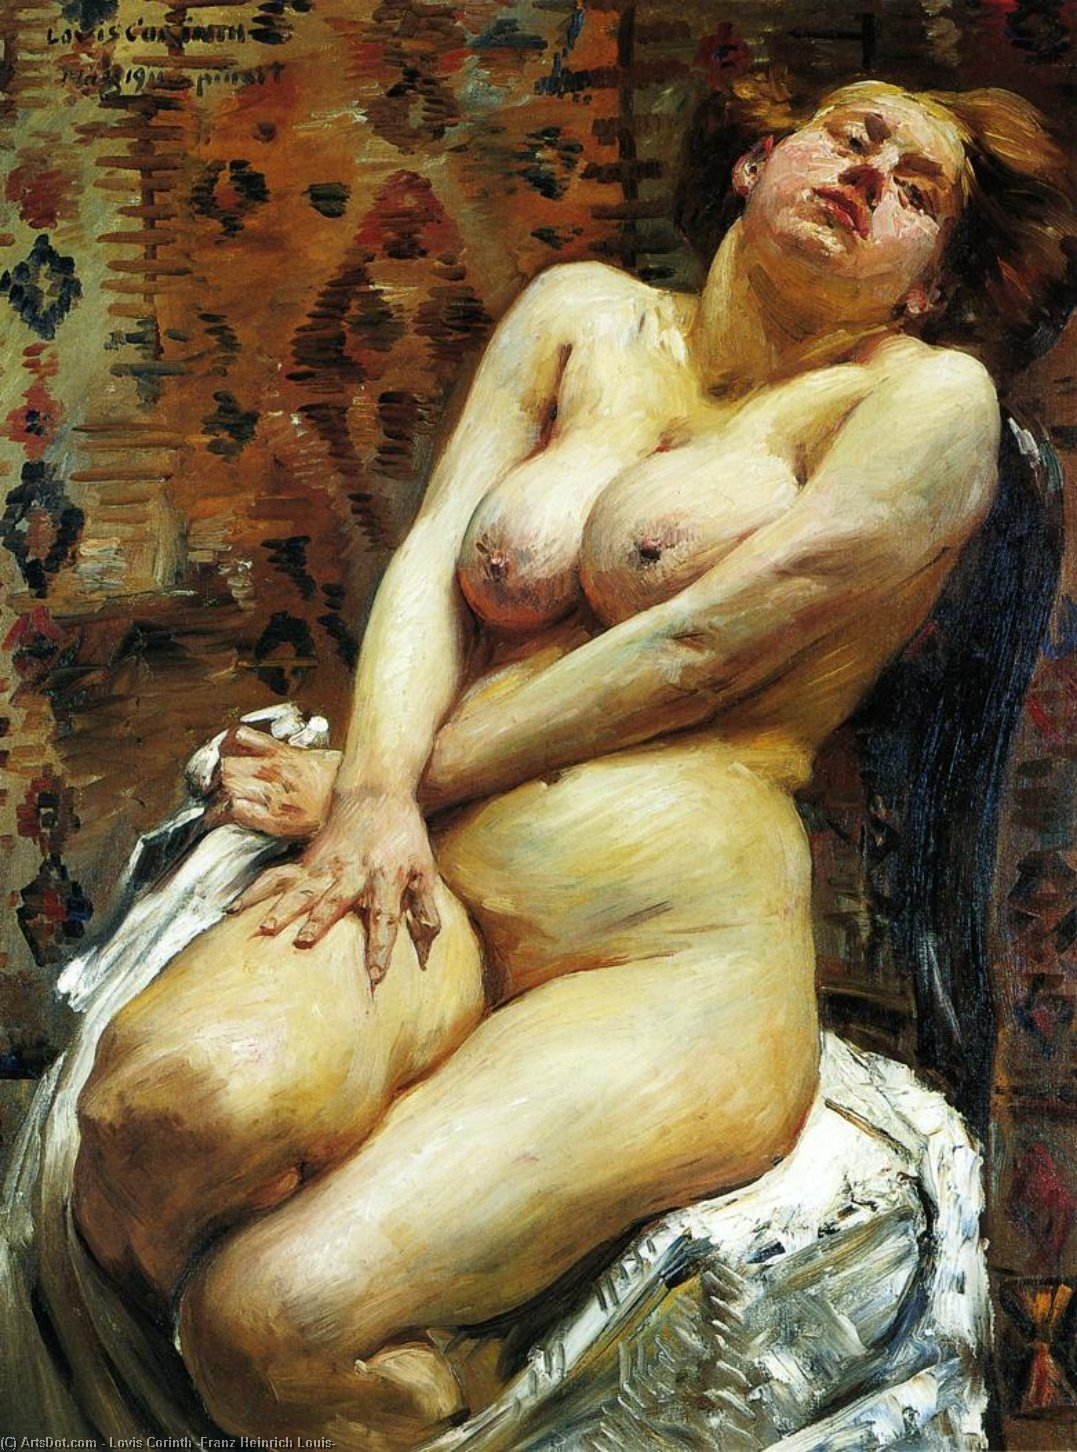 Nana, Female Nude, Oil On Canvas by Lovis Corinth (Franz Heinrich Louis) (1858-1925, Netherlands)